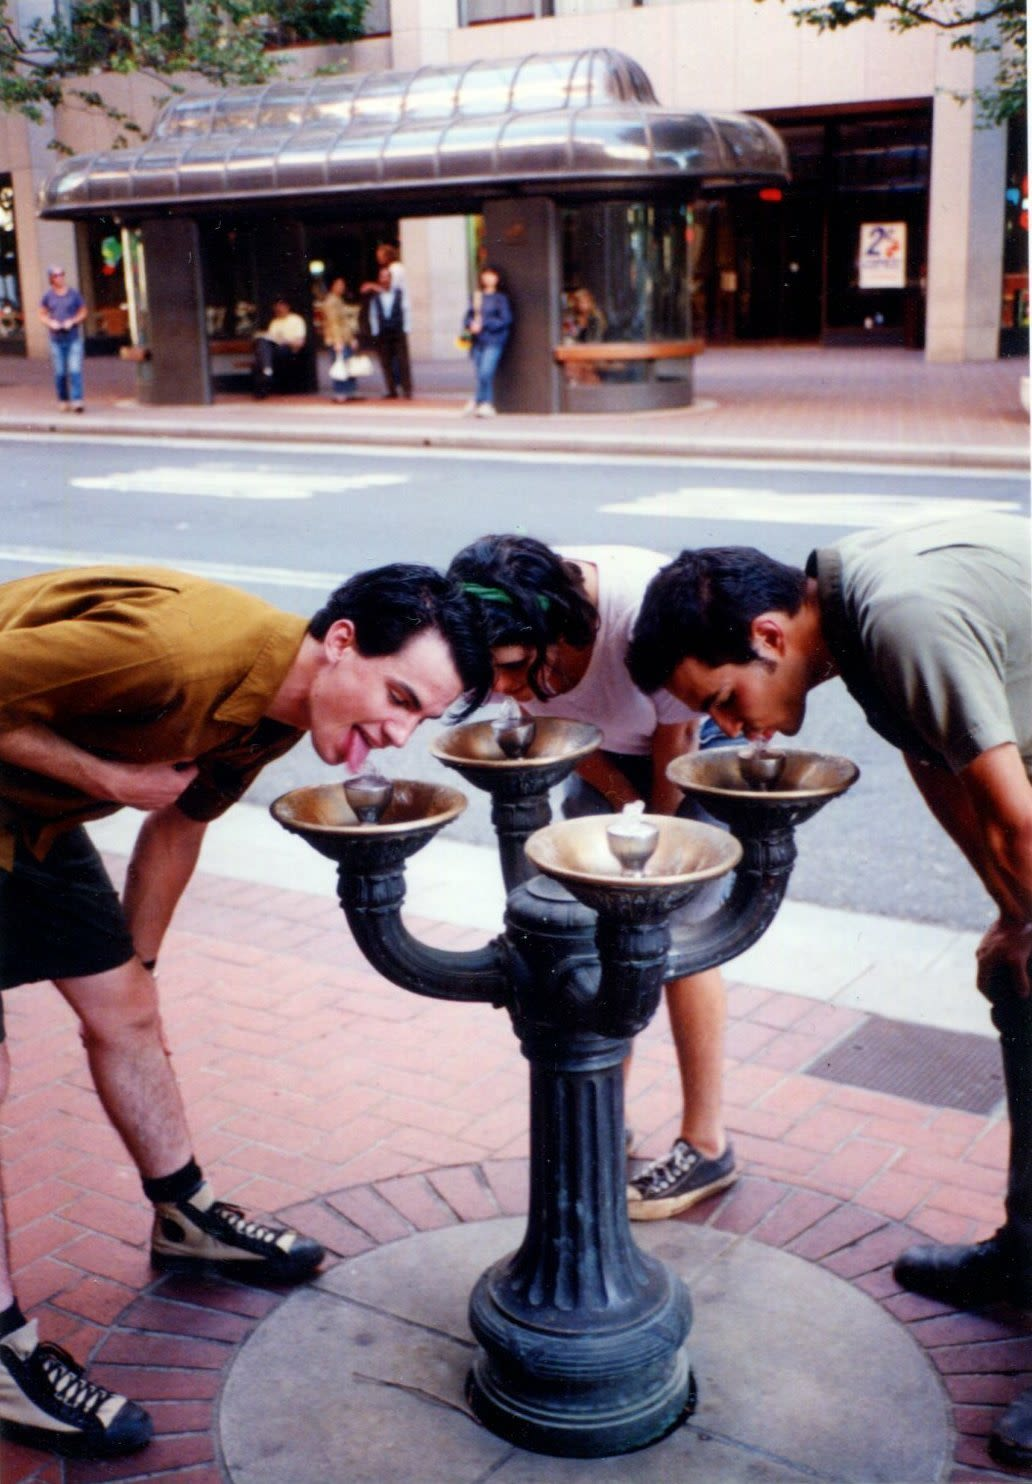 Three people lean over a Benson Bubbler water fountain on a downtown street with a bus shelter behind them